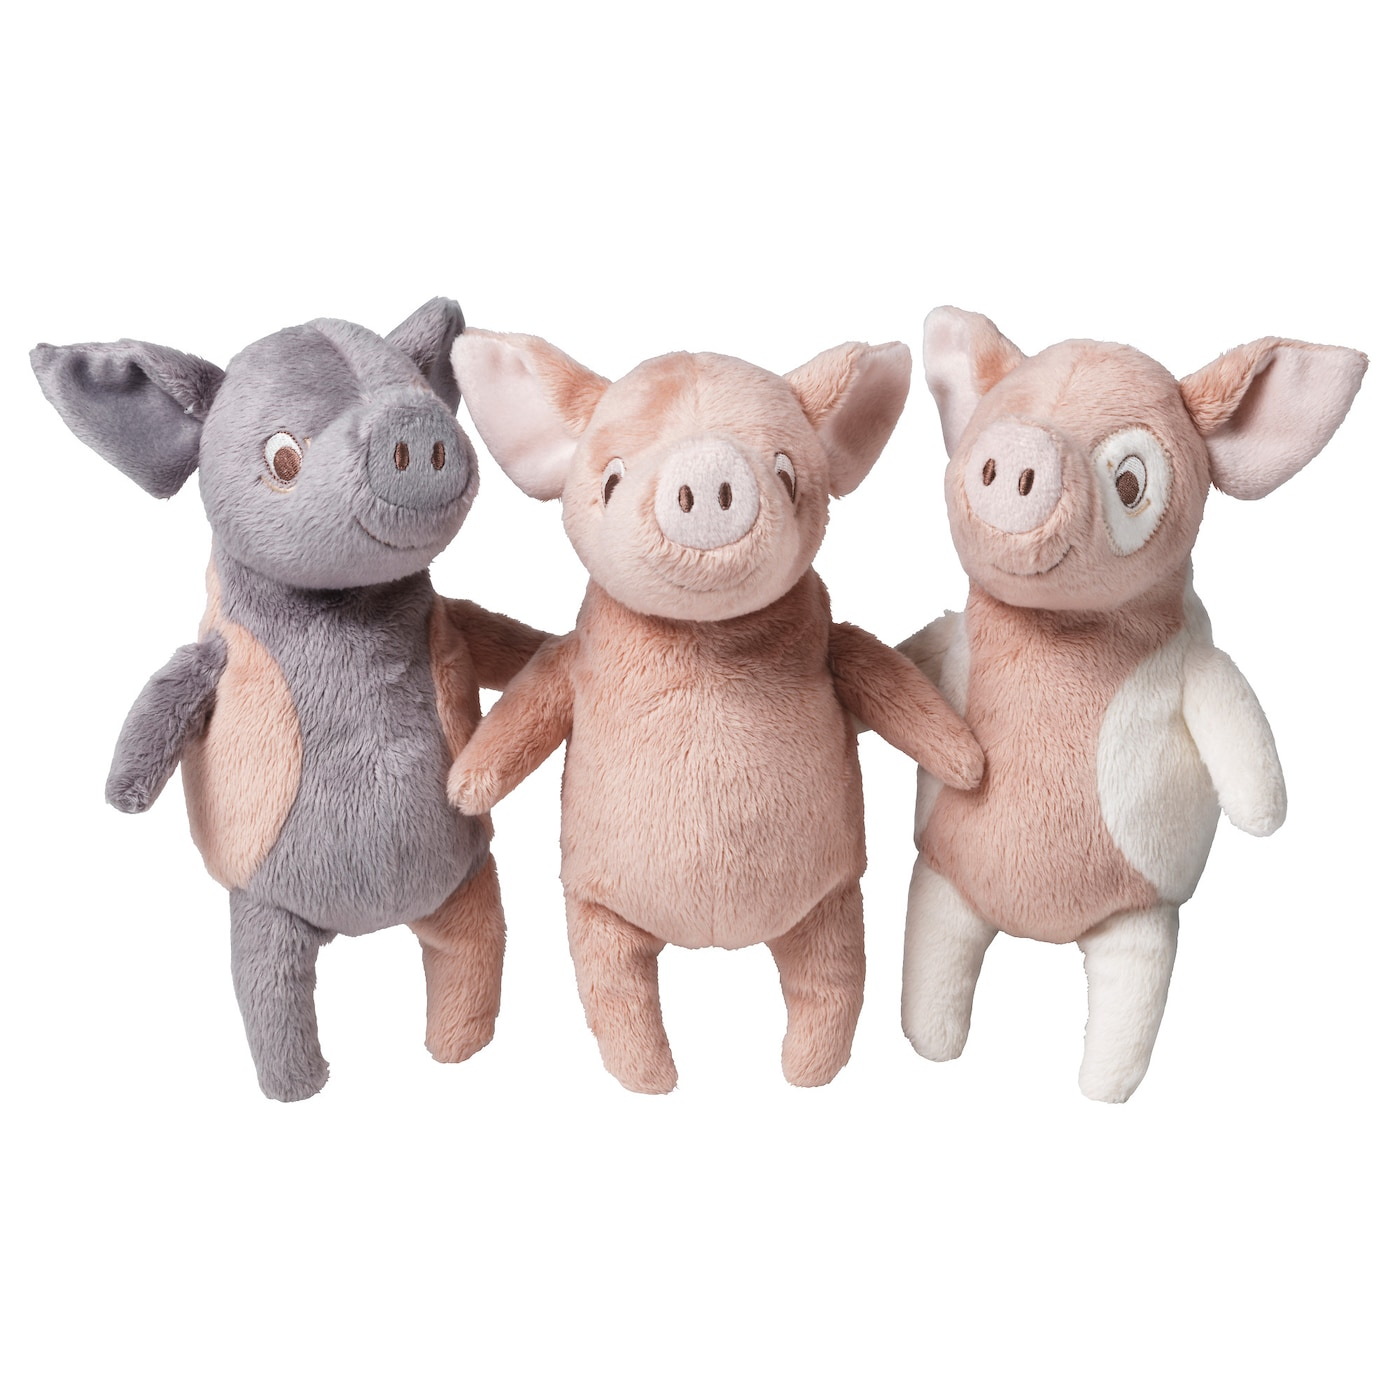 Soft Toys Product : Kelgris soft toy pig assorted designs ikea